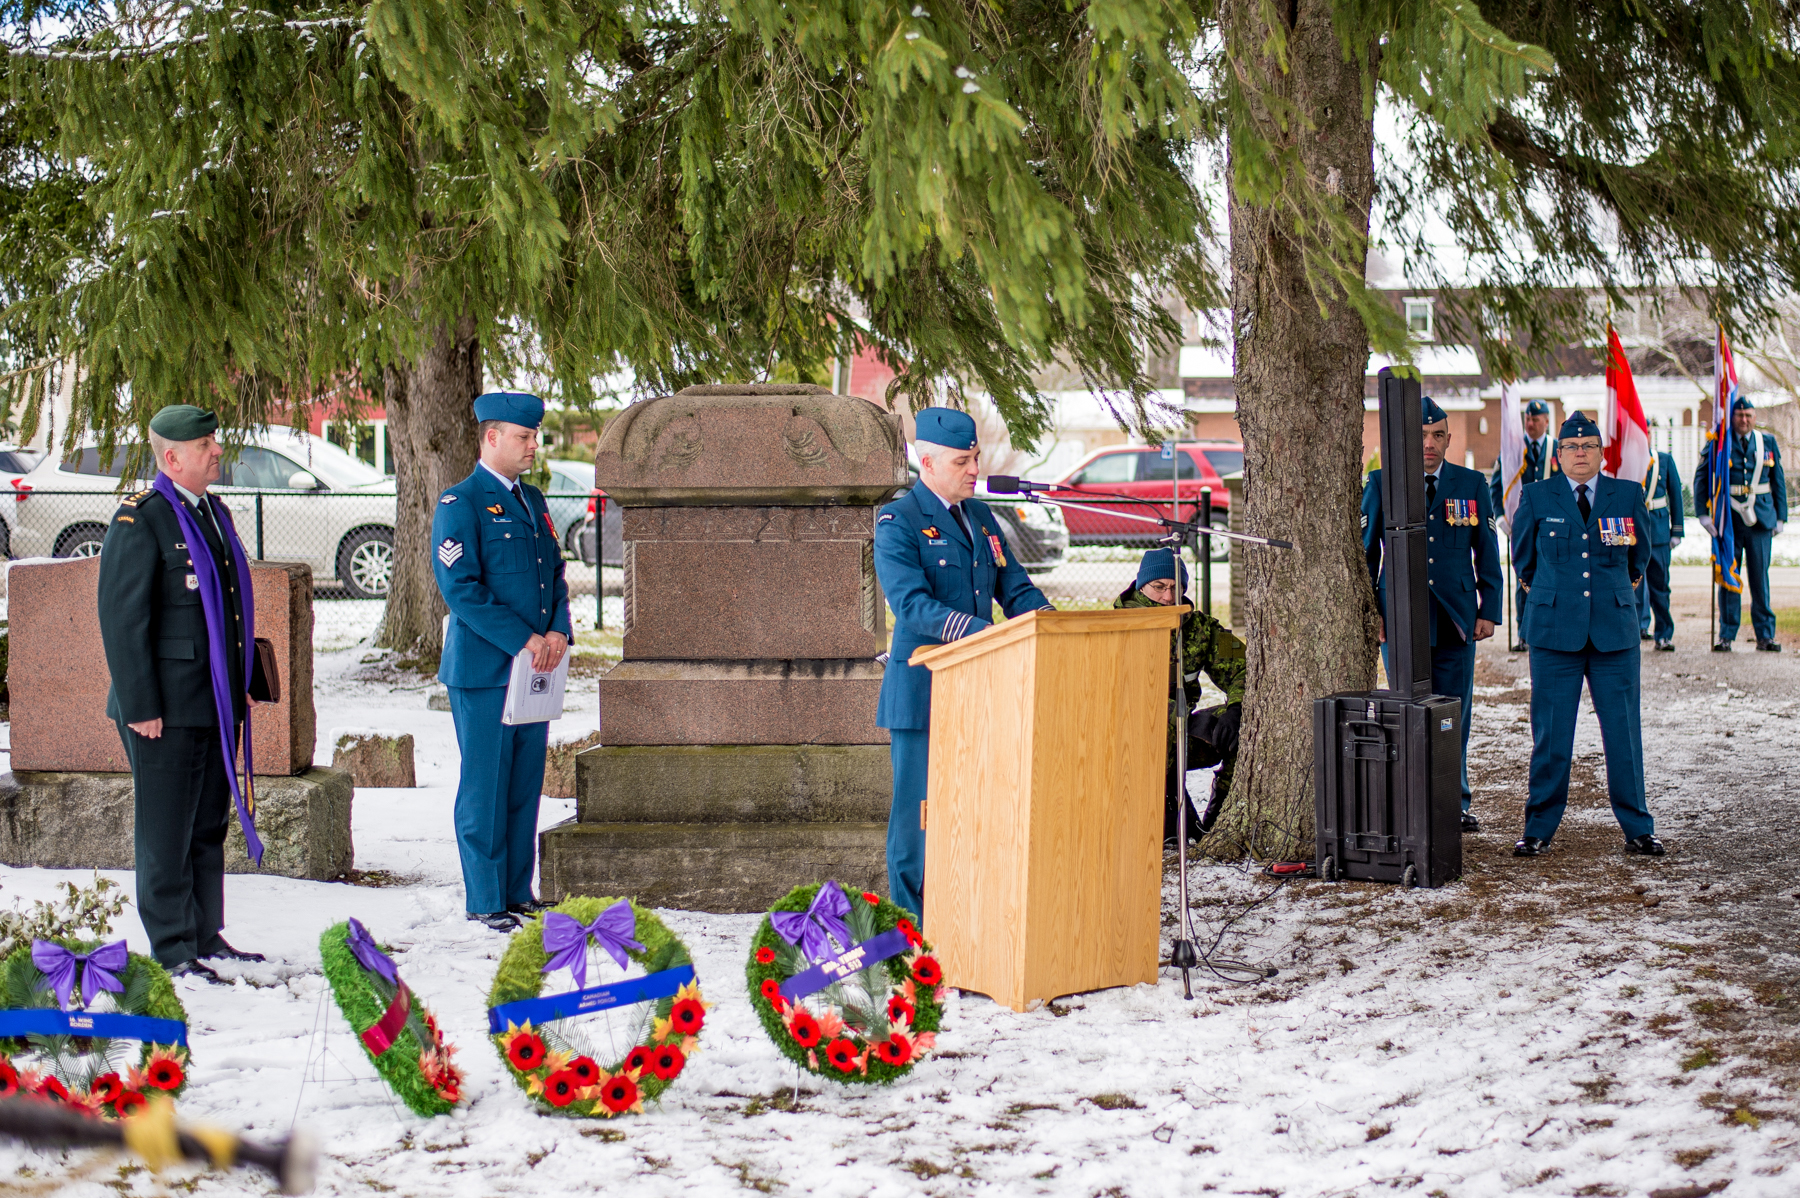 16 Wing Commander Colonel Andrew Fleming addresses attendees of the April 7, 2017, ceremony at Dorchester Union Cemetery, in Dorchester, Ontario, commemorating the 100th anniversary of the death of Cadet James Harold Talbot, who died in a flight training accident on April 8, 1917. Cadet Talbot was the first casualty of military flying in Canada. PHOTO: Corporal Aydyn Neifer, BM03-2017-0107-23